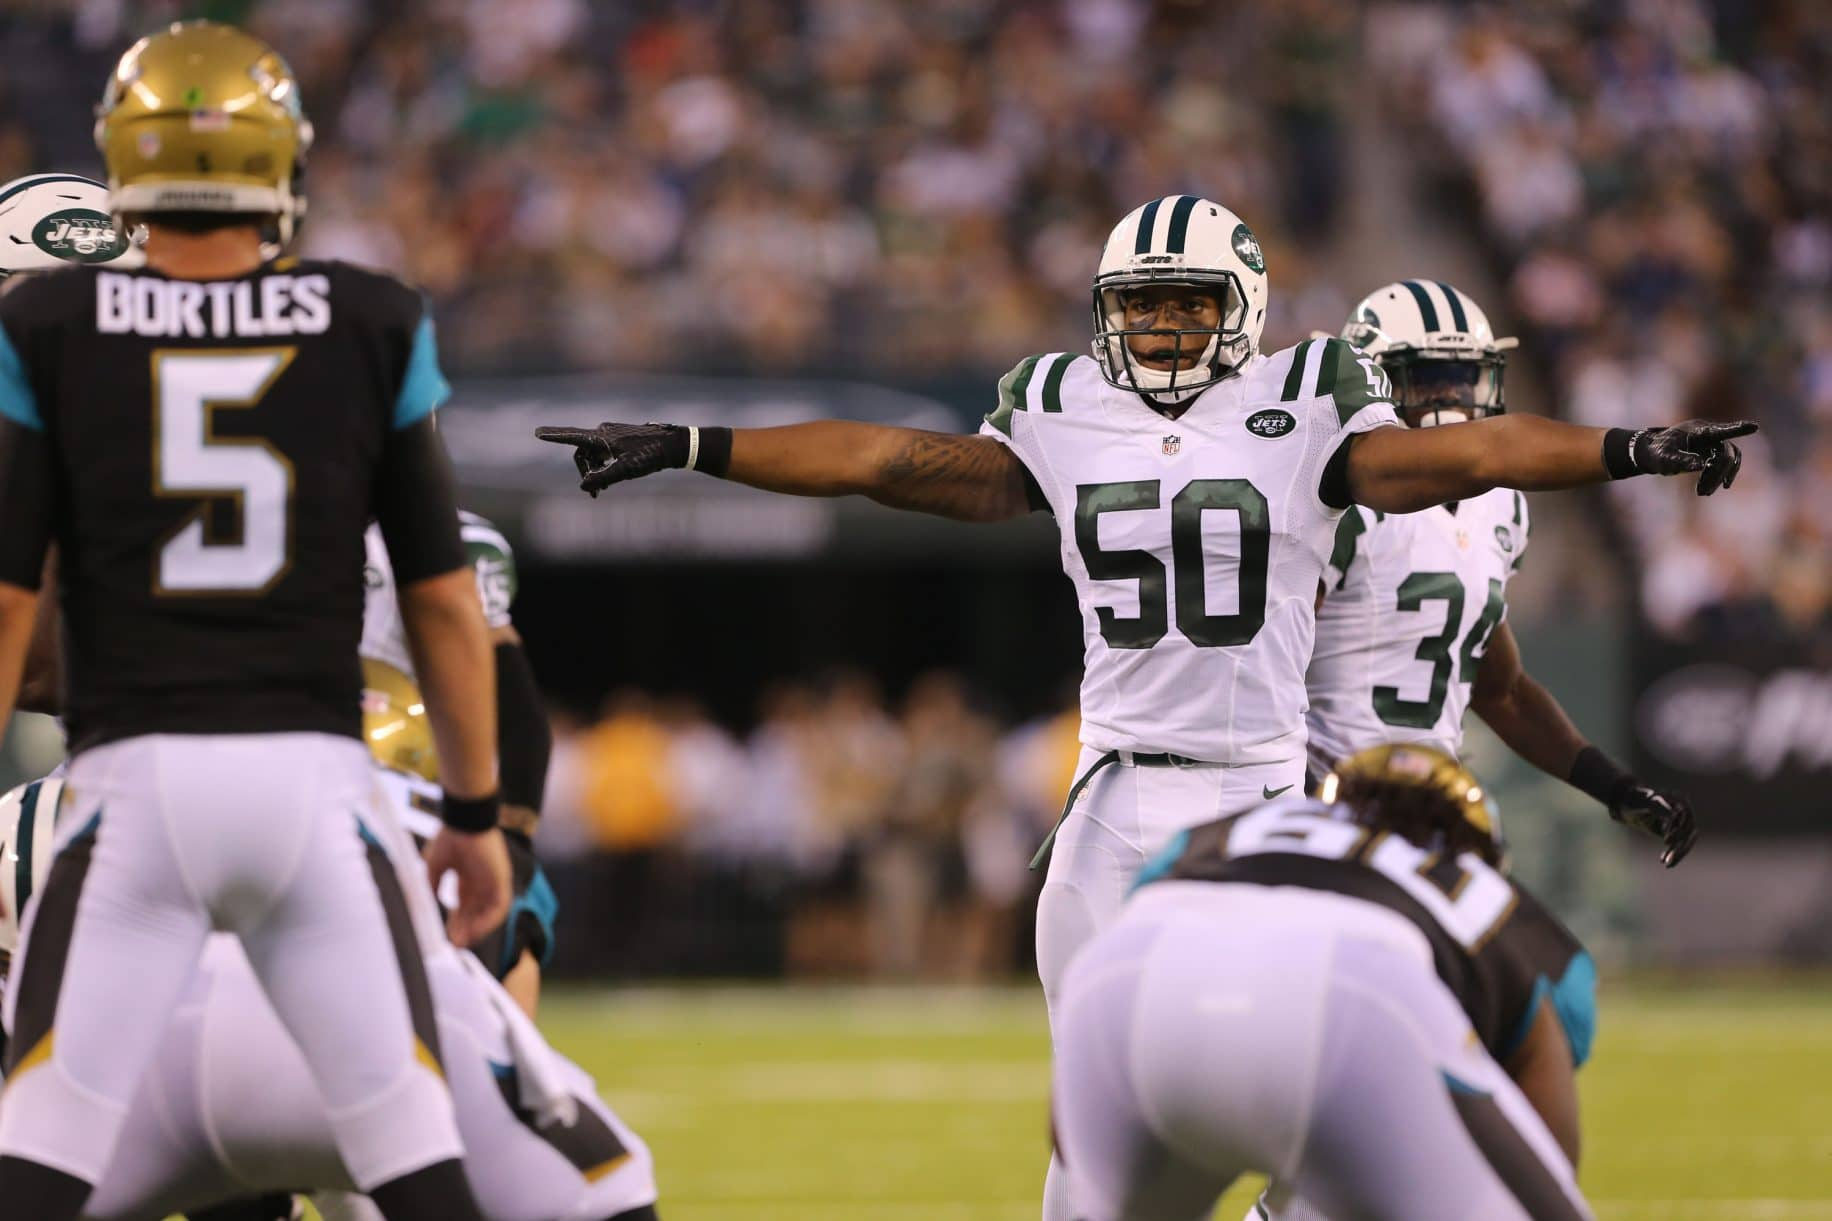 New York Jets vs. Jacksonville Jaguars Preview: Gang Green's O-Line To Be Seriously Tested 1